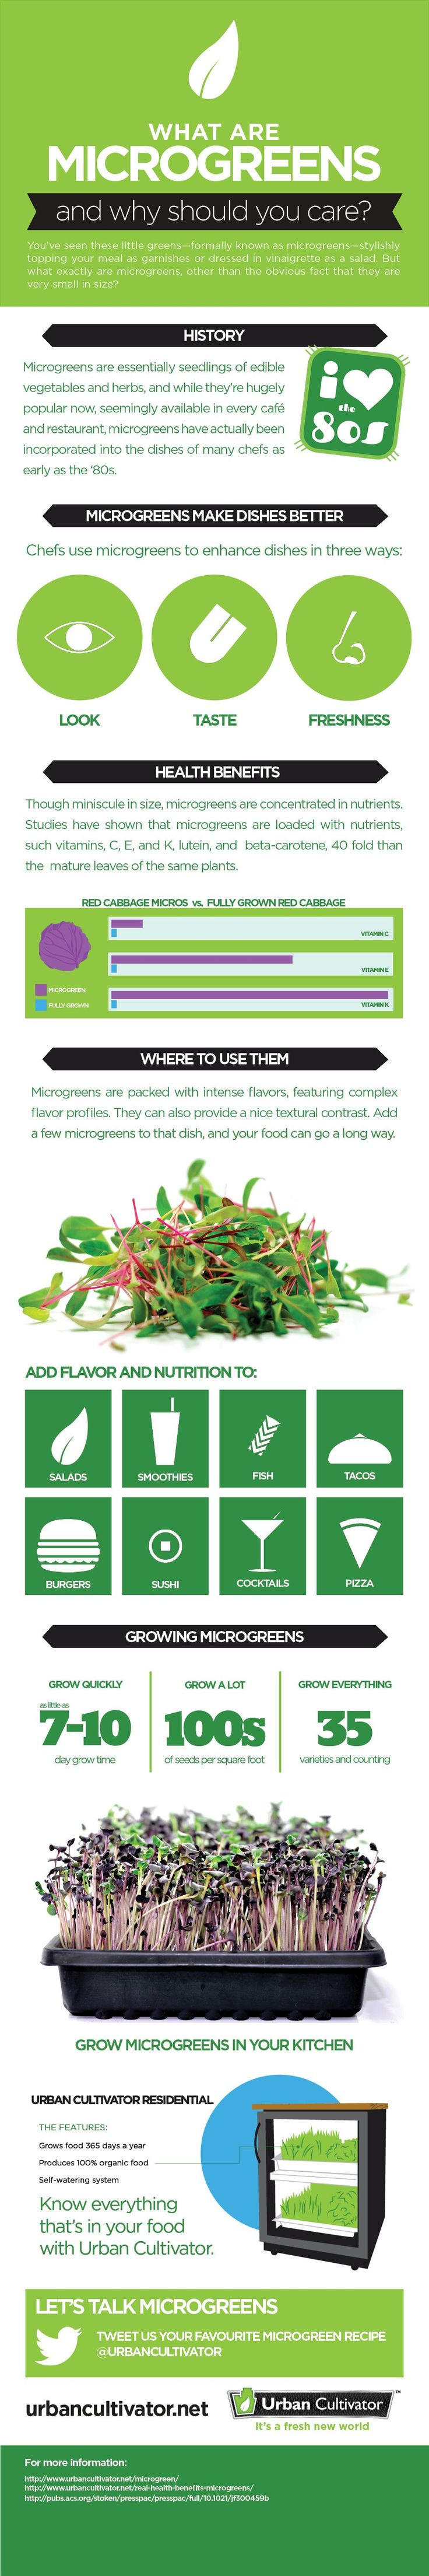 300 best images about aquaponic hydroponic on pinterest for Best growing medium for microgreens